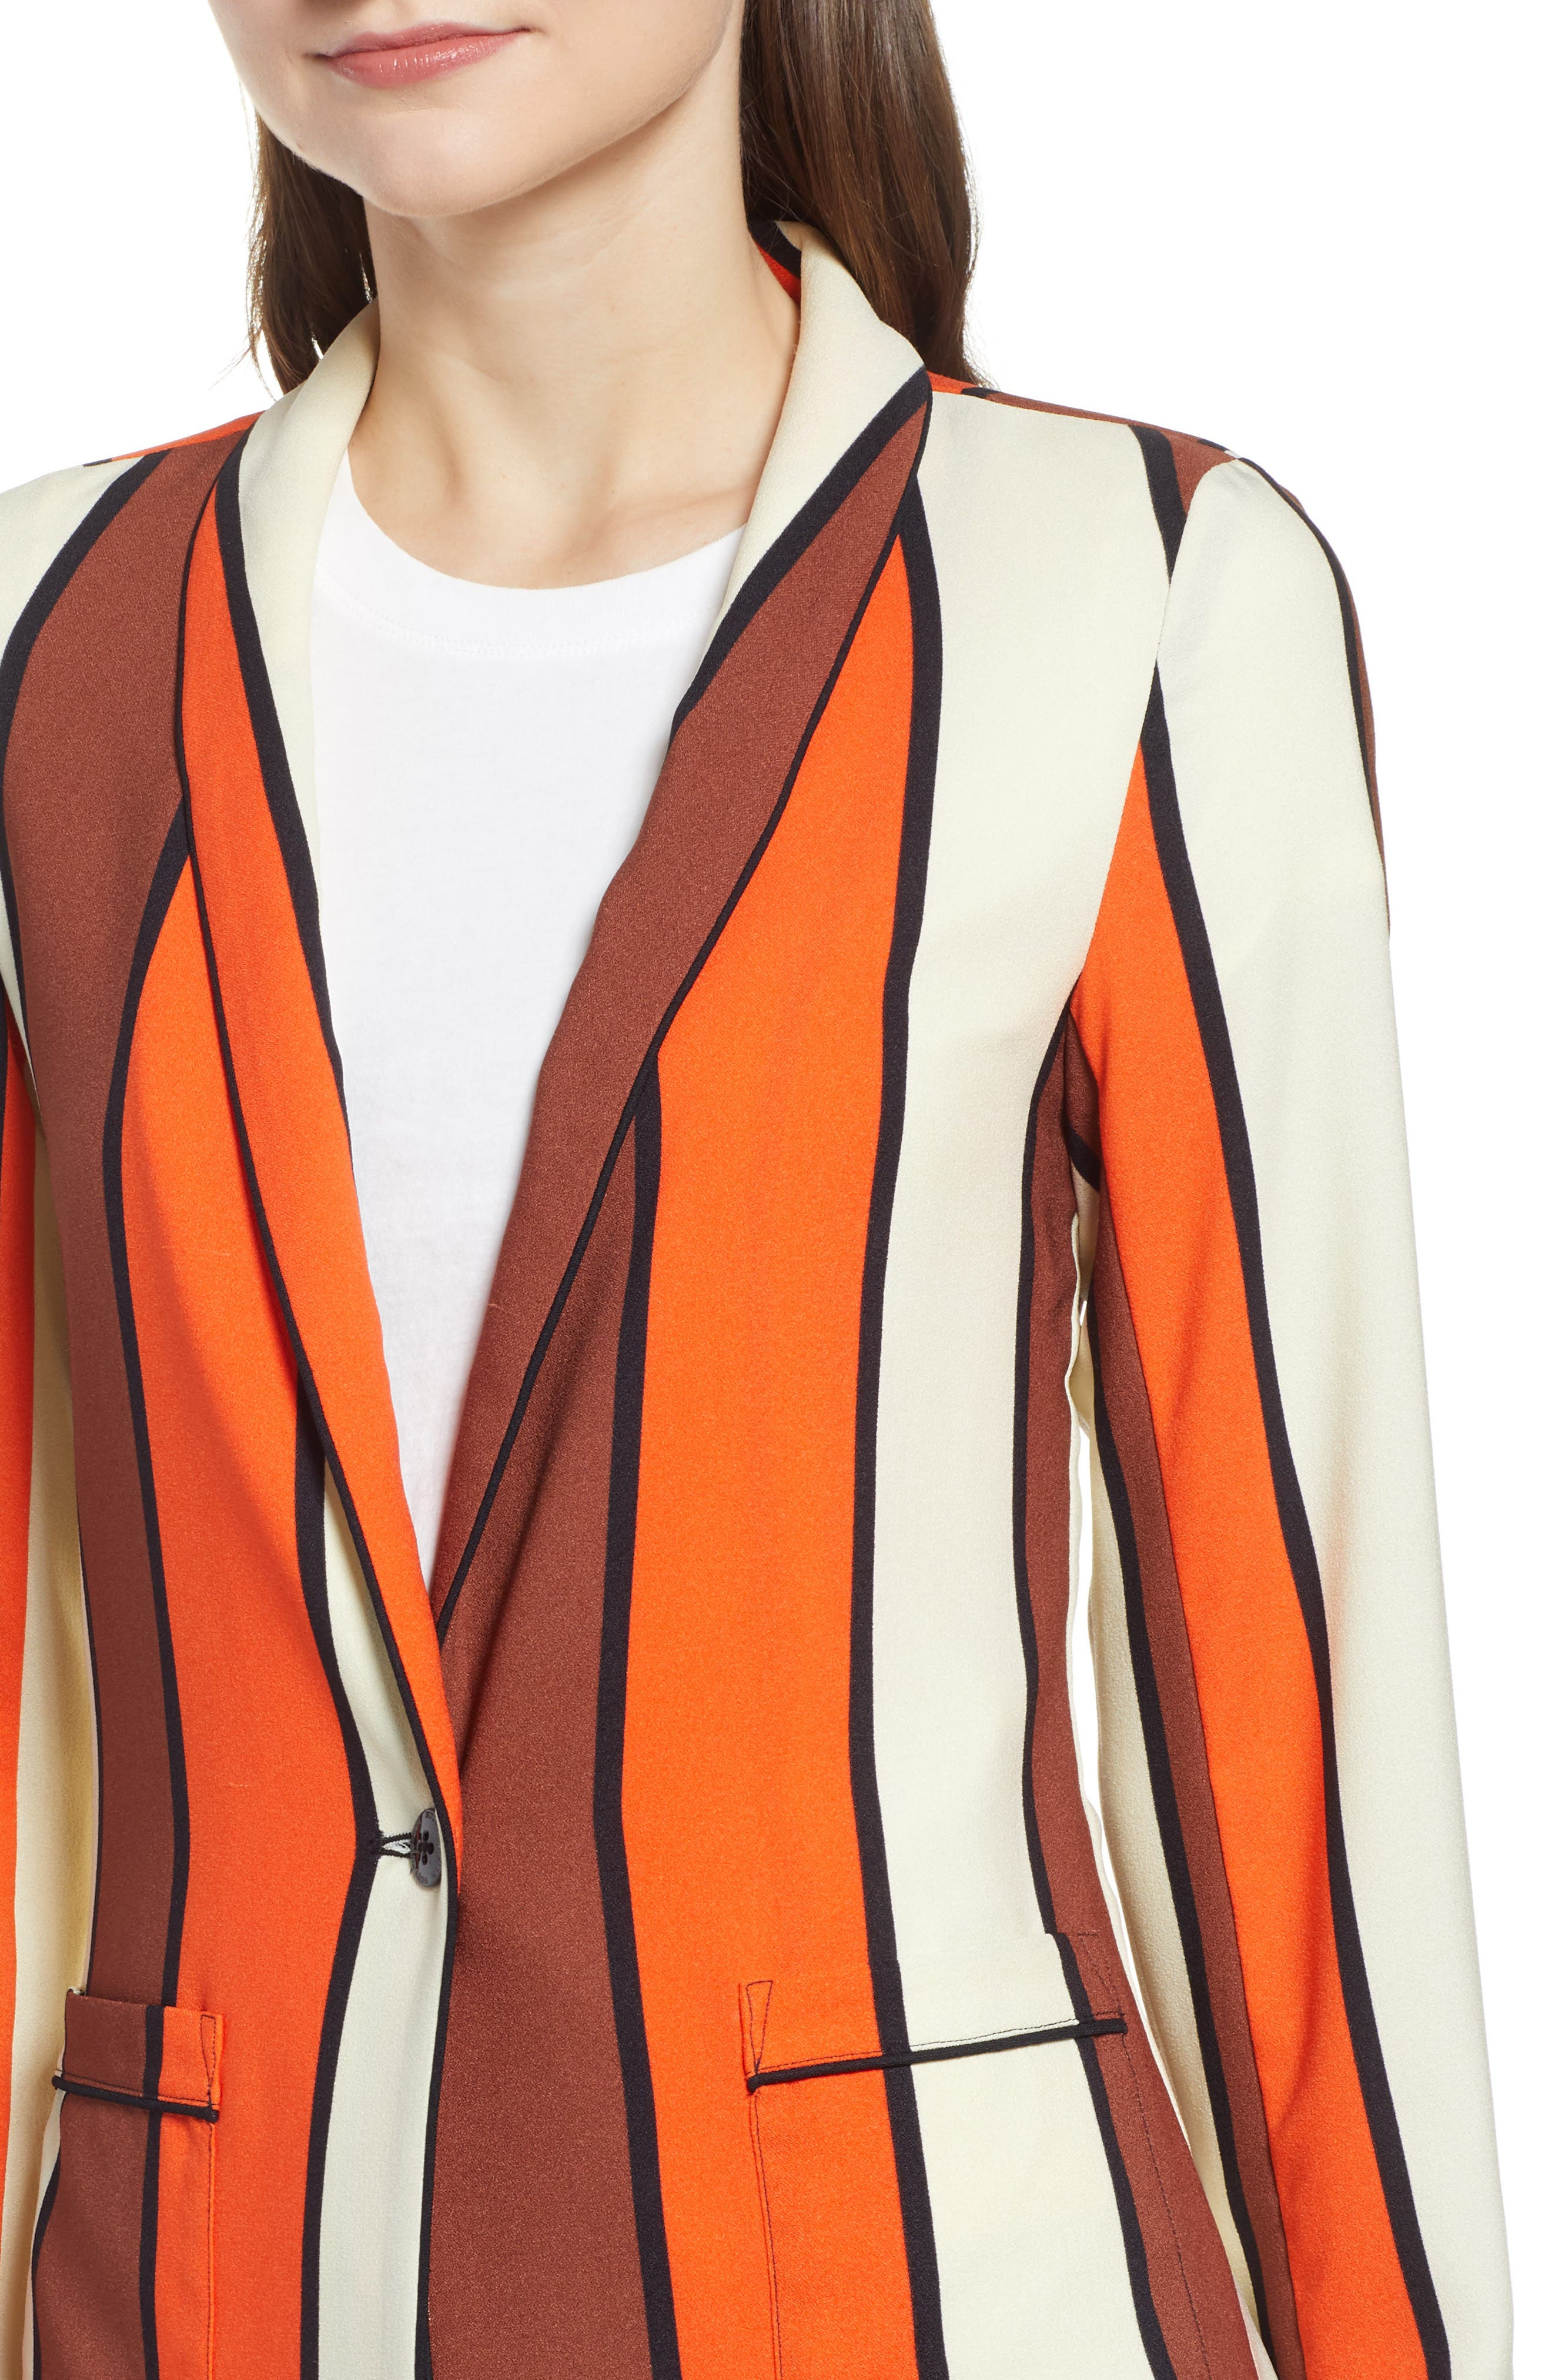 SCOTCH & SODA, Stripe Drapey Blazer, Alternate thumbnail 5, color, COMBO S